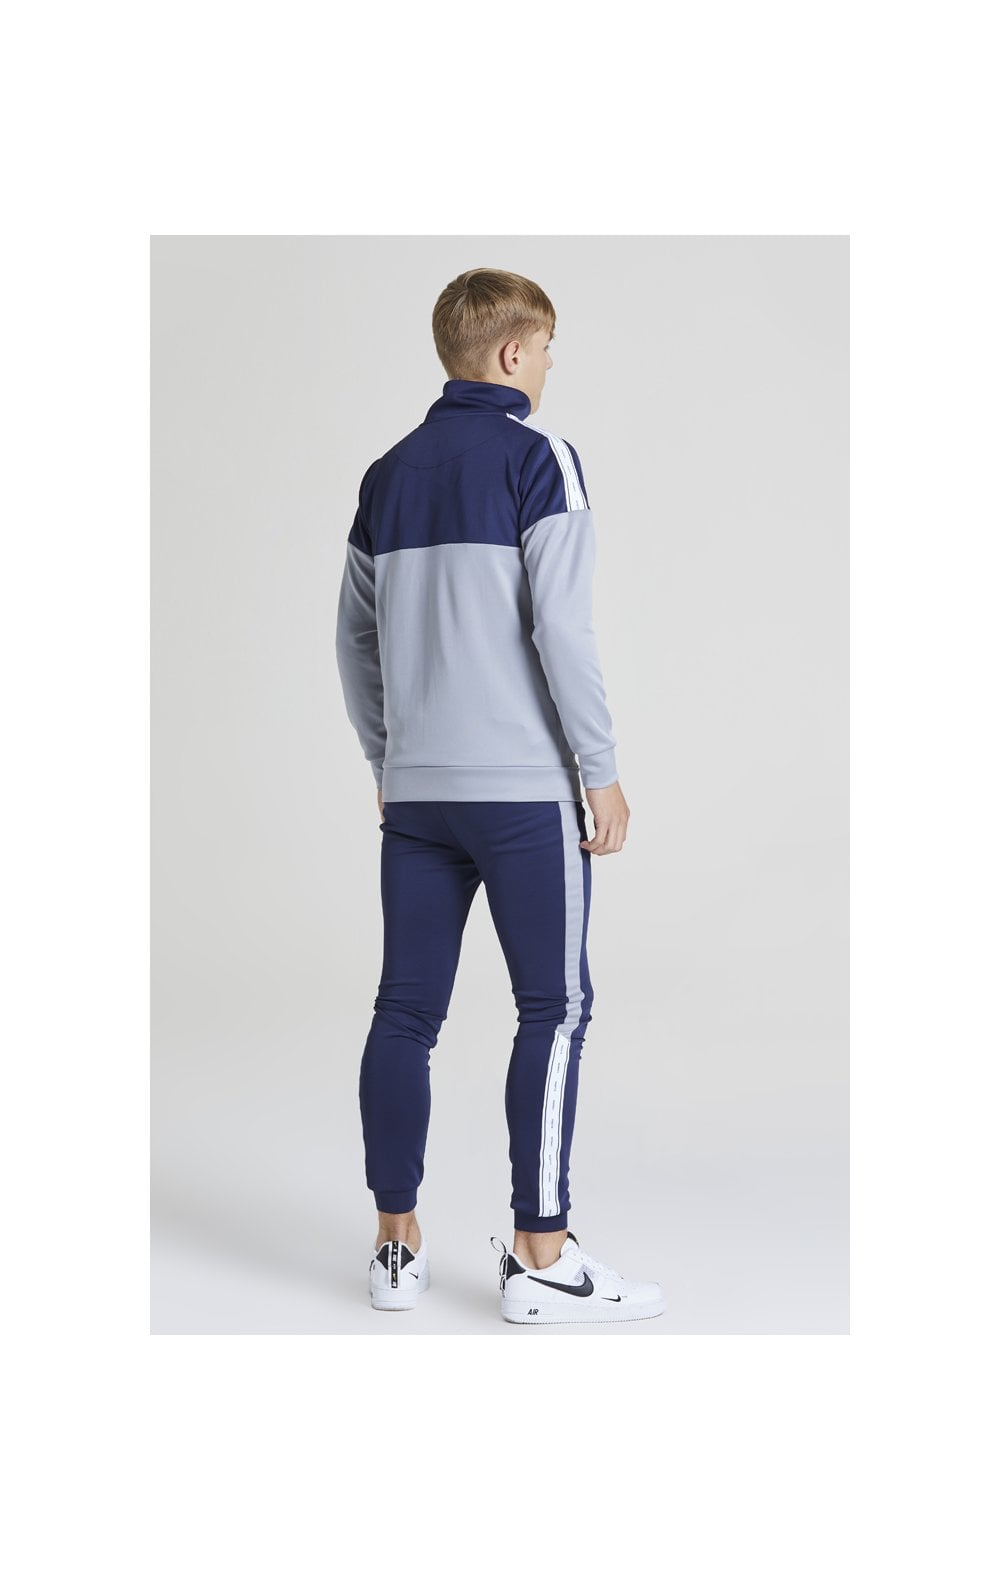 Illusive London Taped Joggers - Navy & Grey (5)